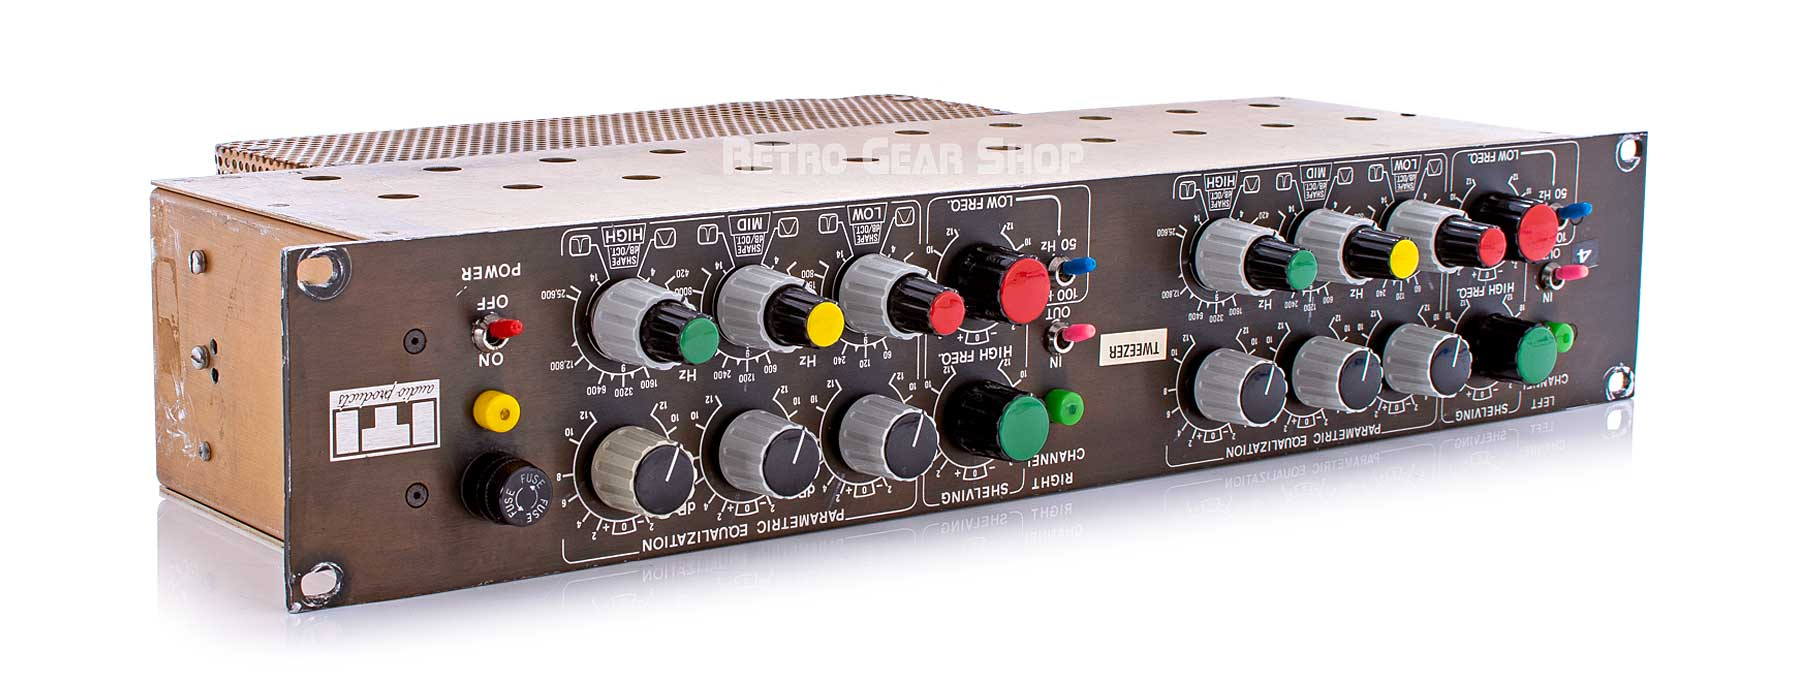 ITI Sontec 230 Parametric EQ Bottom Right